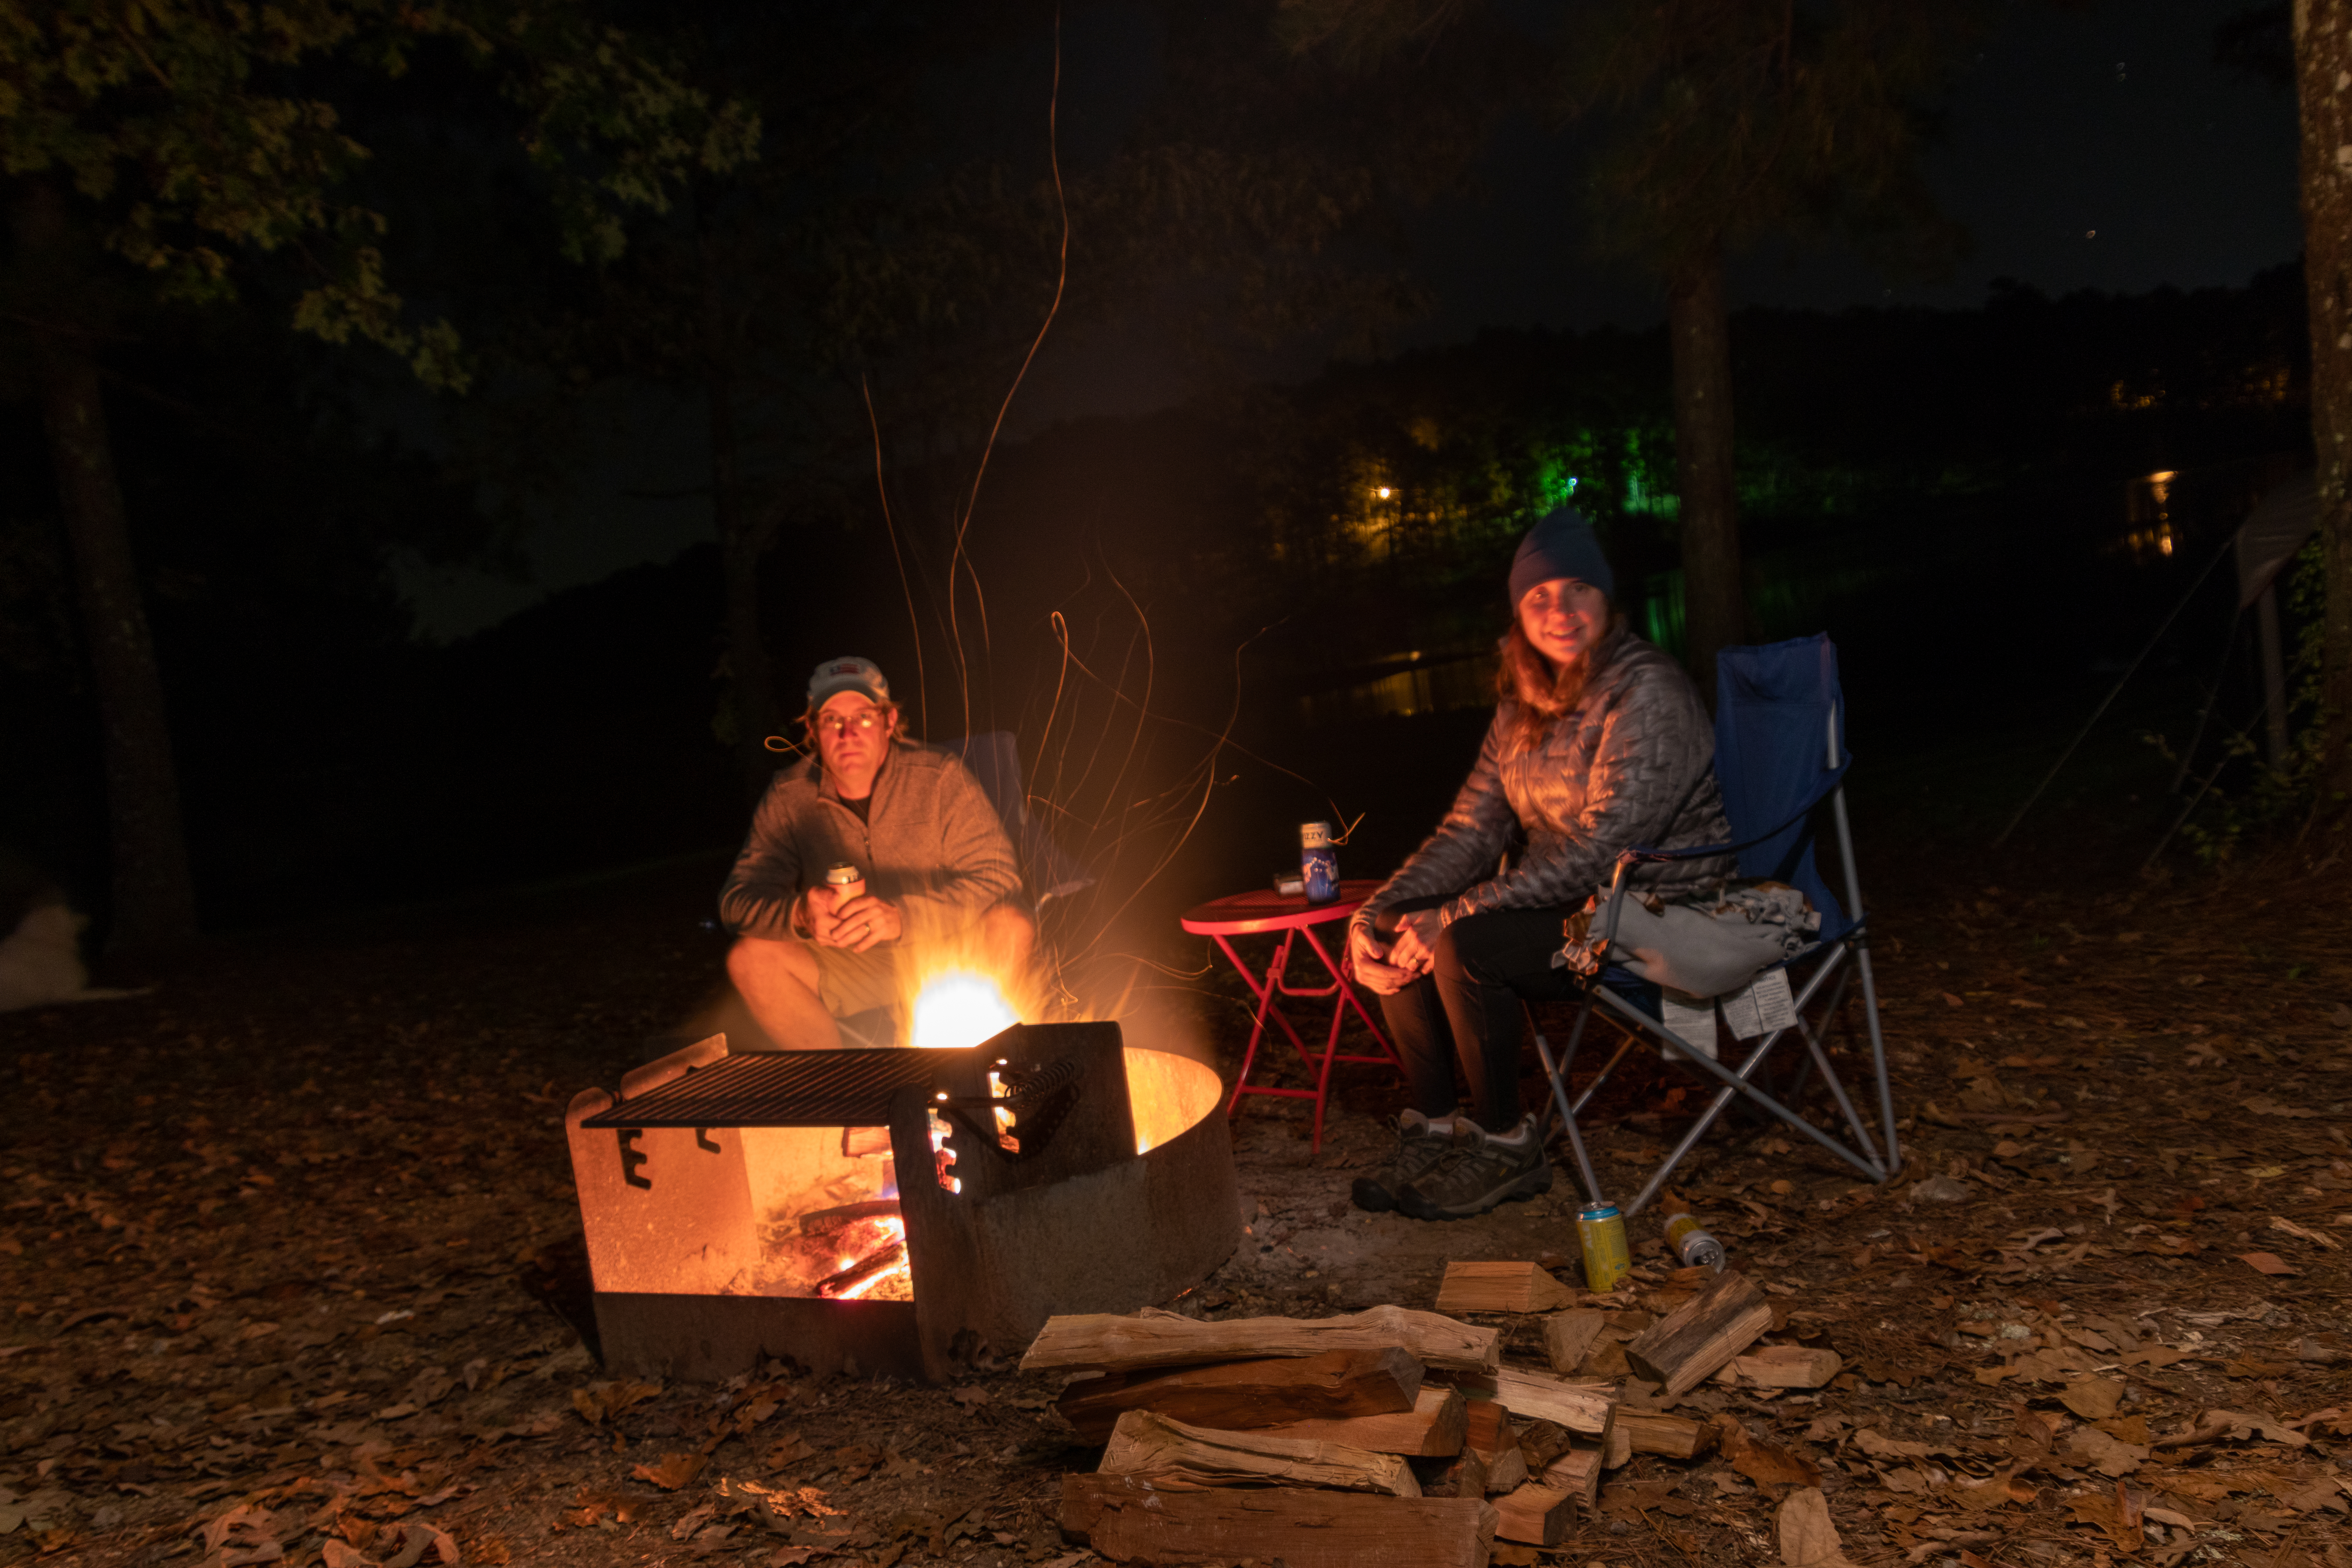 Tishomingo State Park Camping near the Natchez Trace Parkway